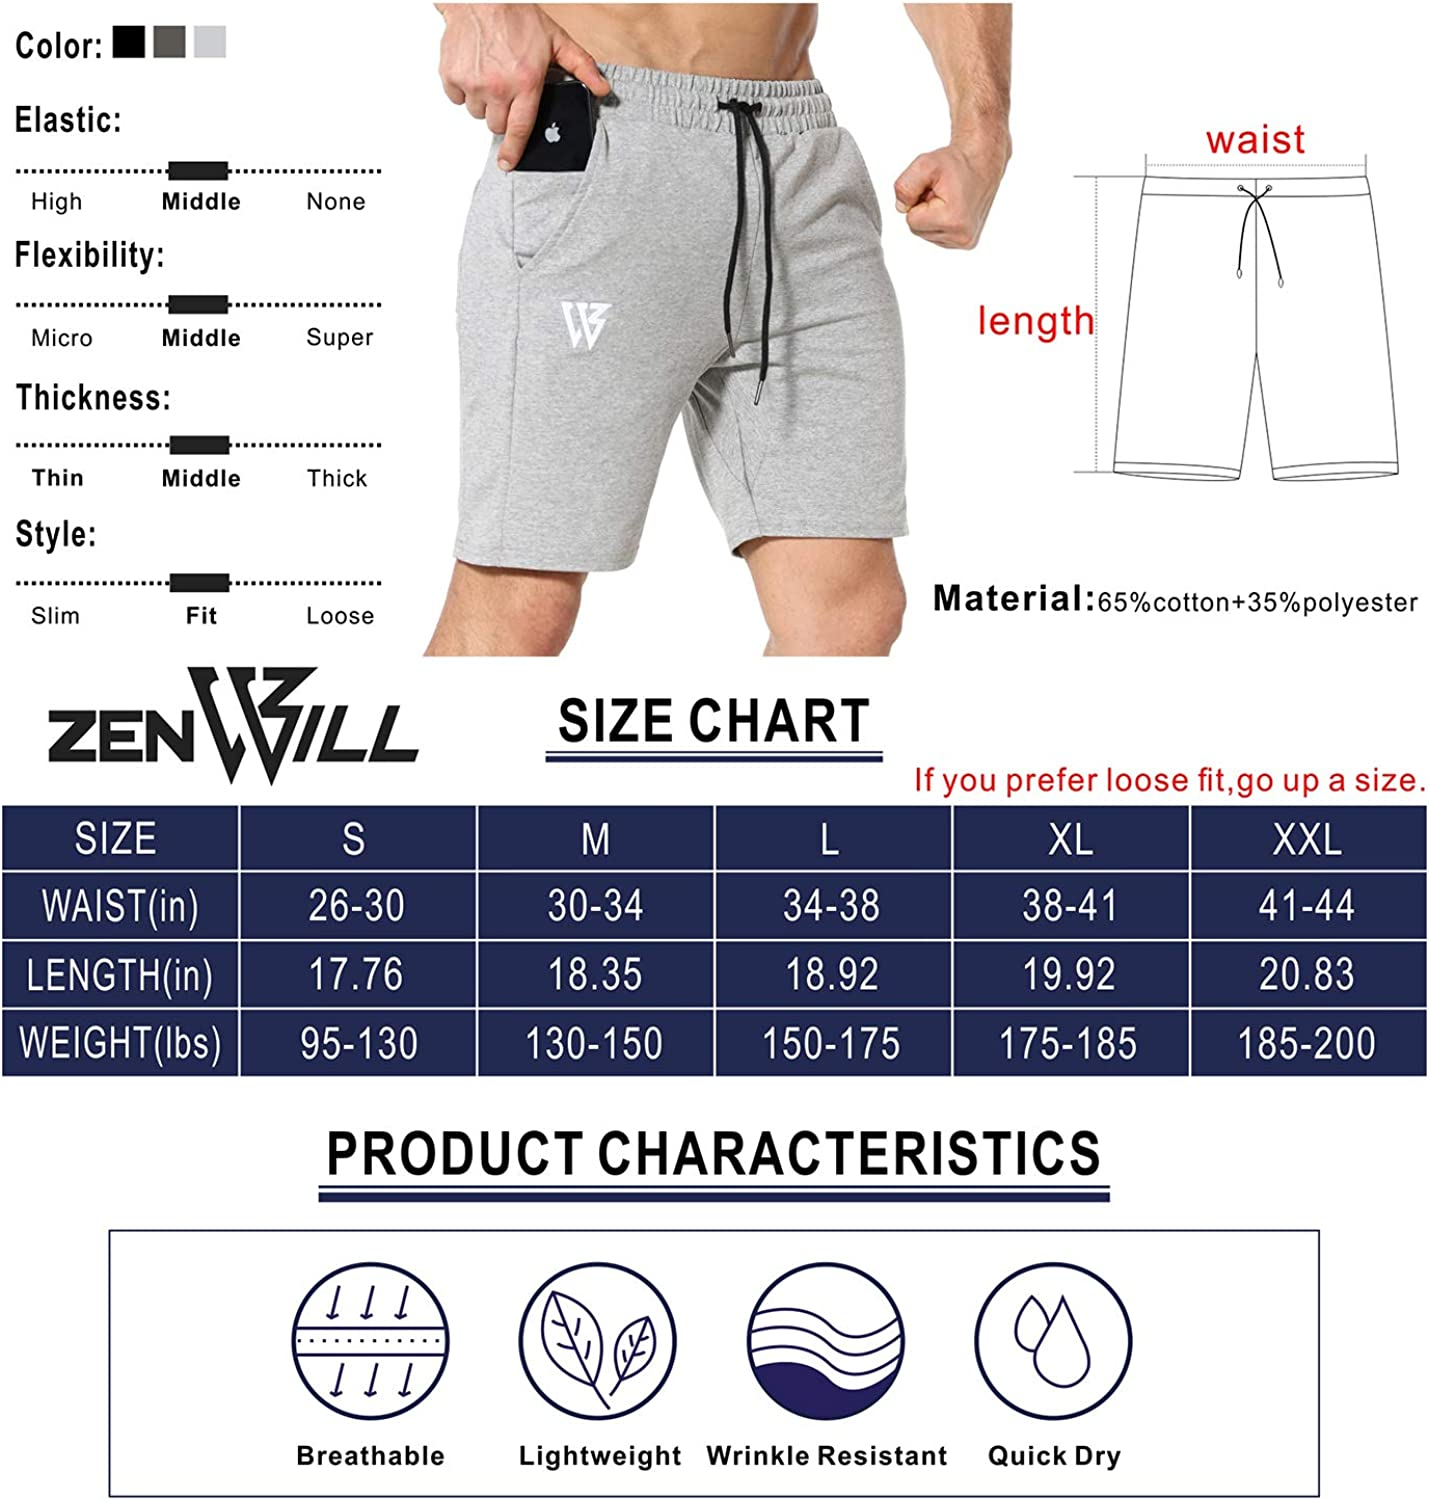 ZENWILL Mens Gym Running Shorts Workout Athletic Bodybuilding Fitness Shorts with Zip Pockets